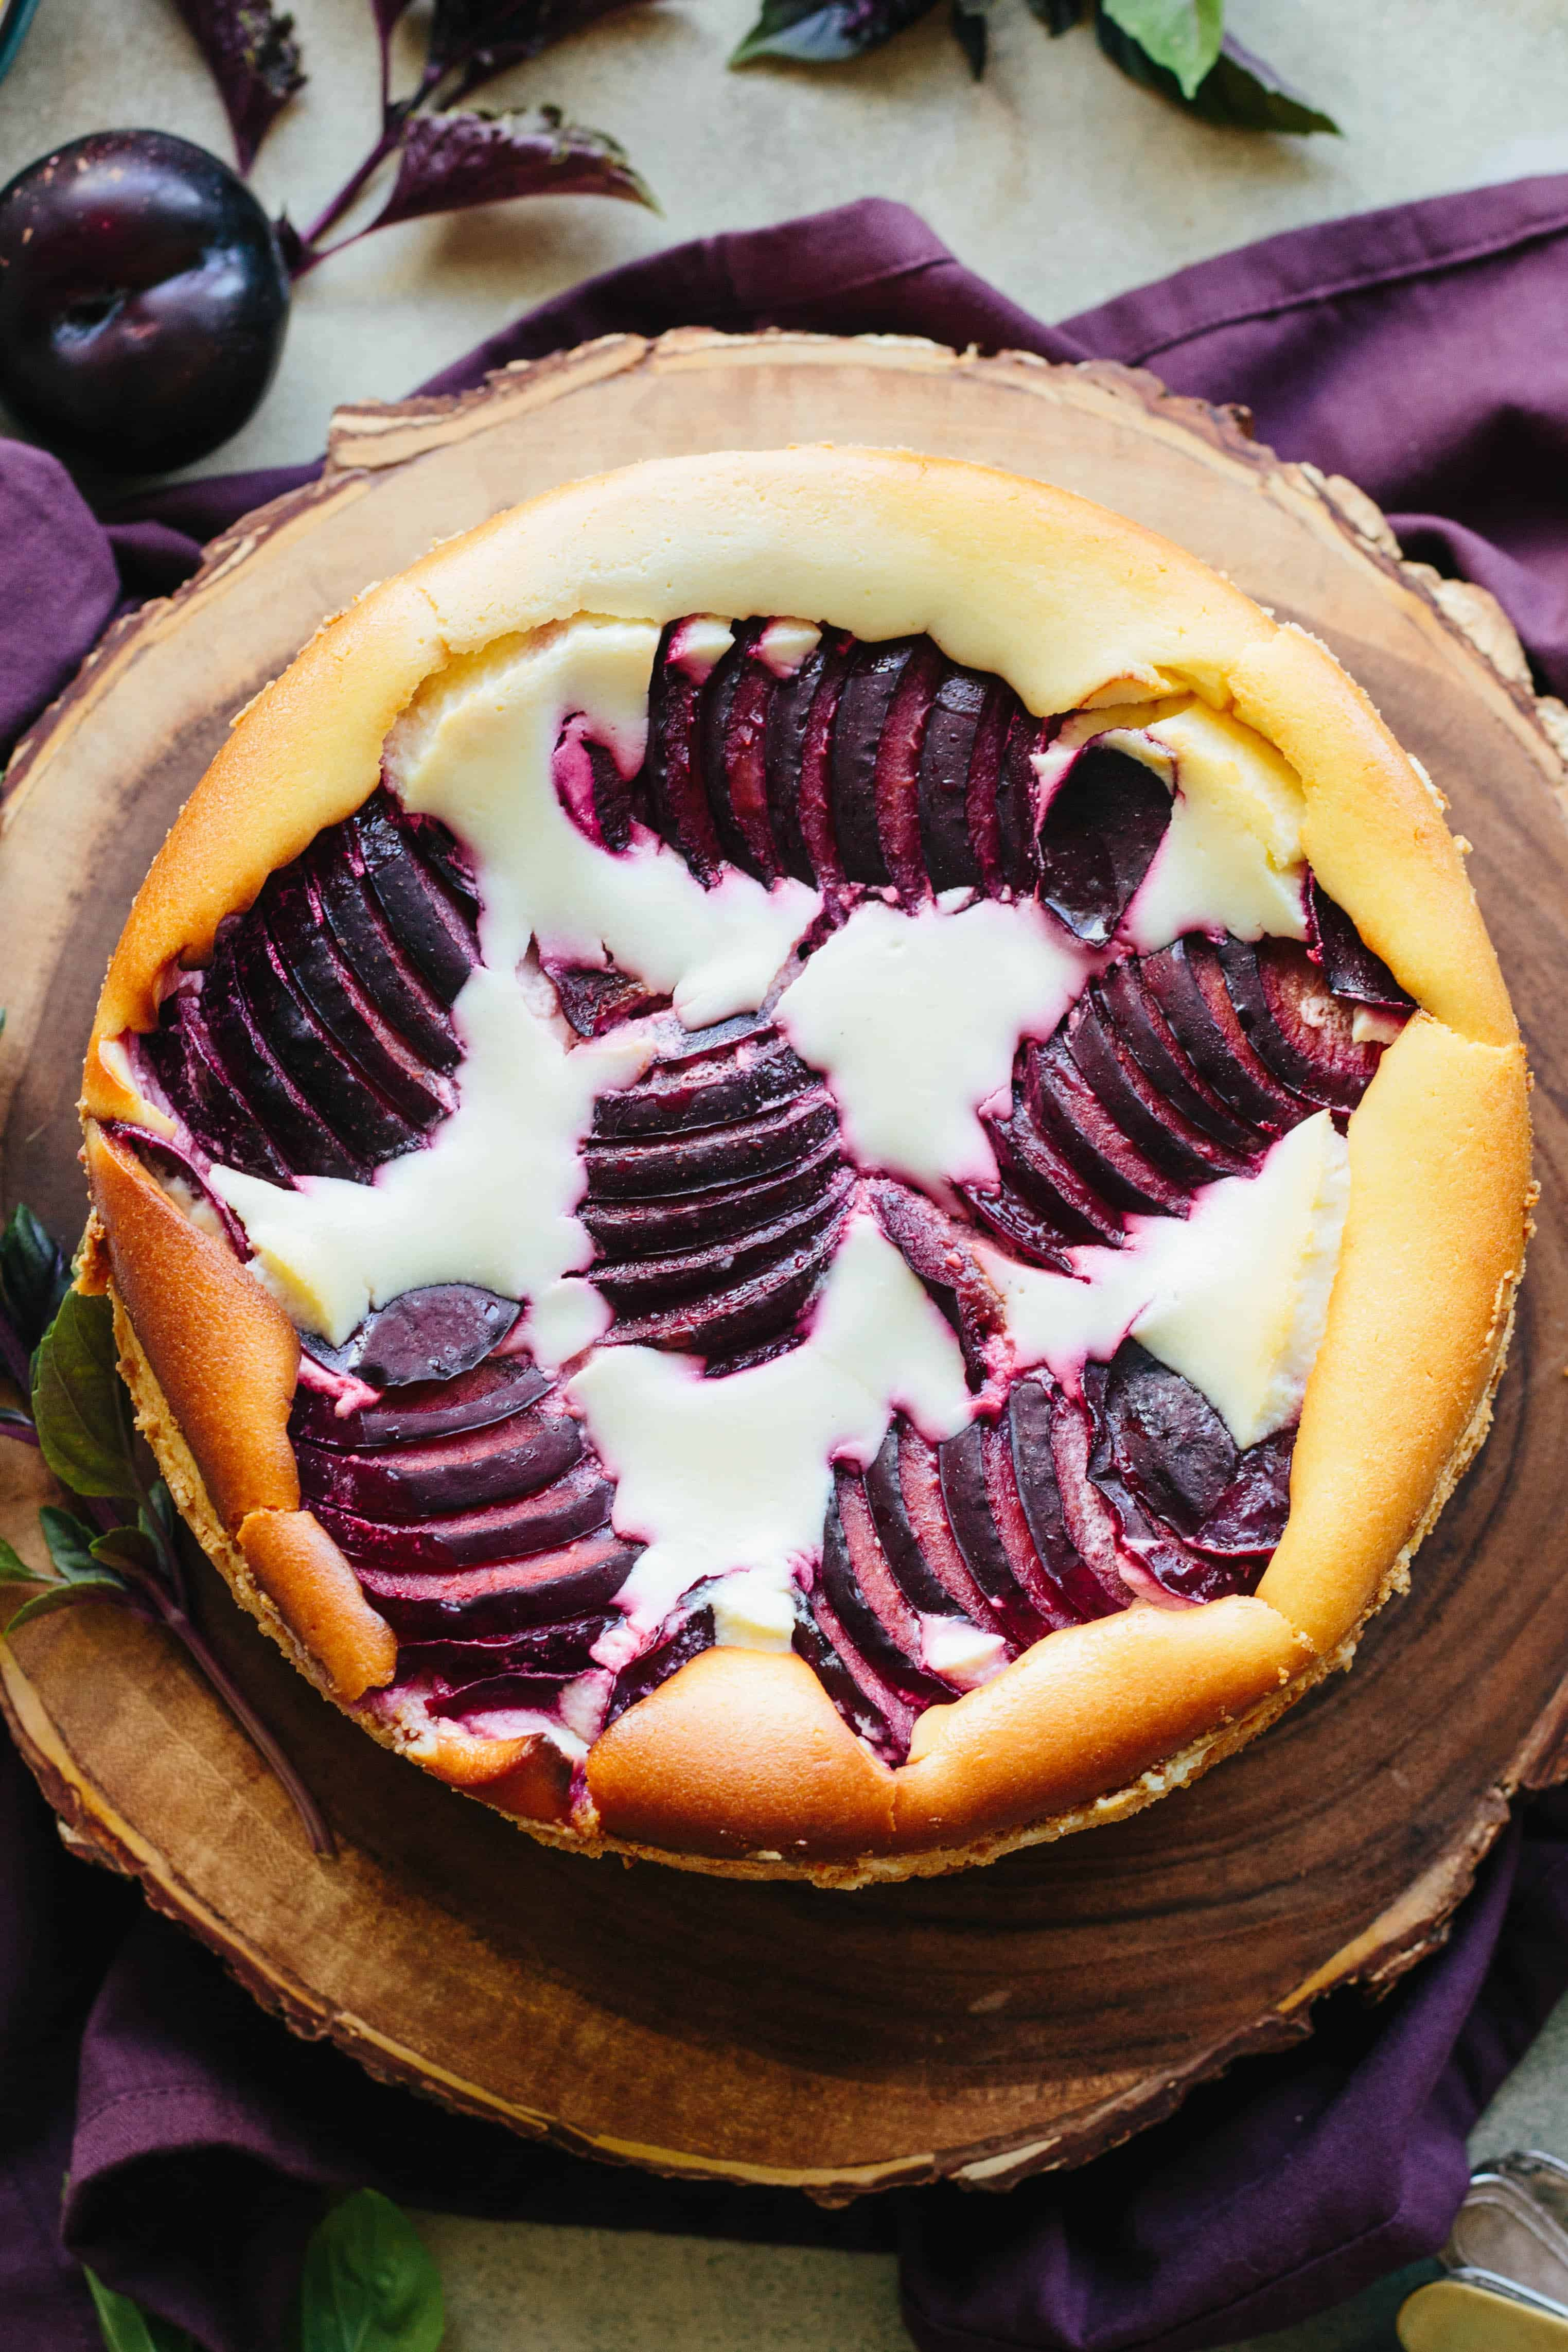 Top view of sliced plums baked into the top of a ricotta cheesecake.